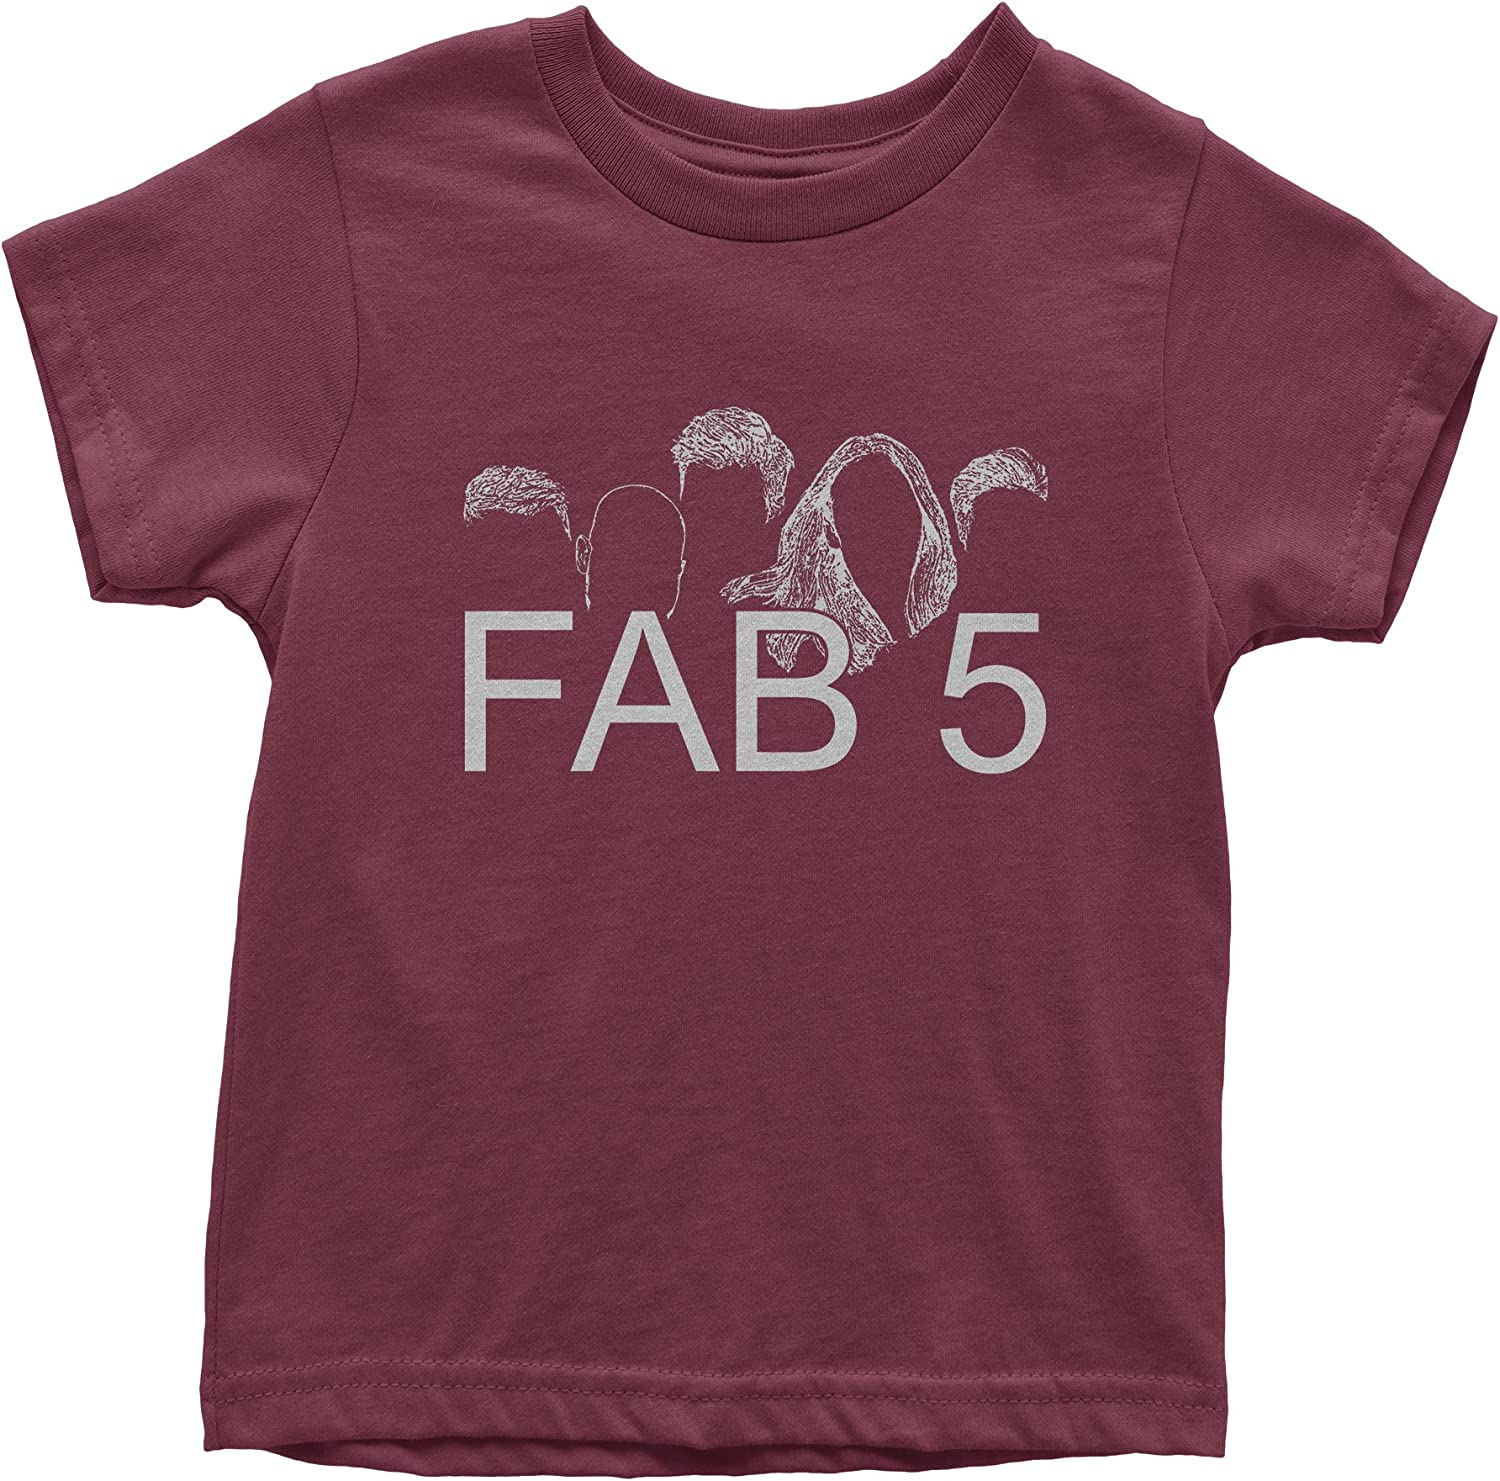 FerociTees Queer Fab 5 Youth T-Shirt